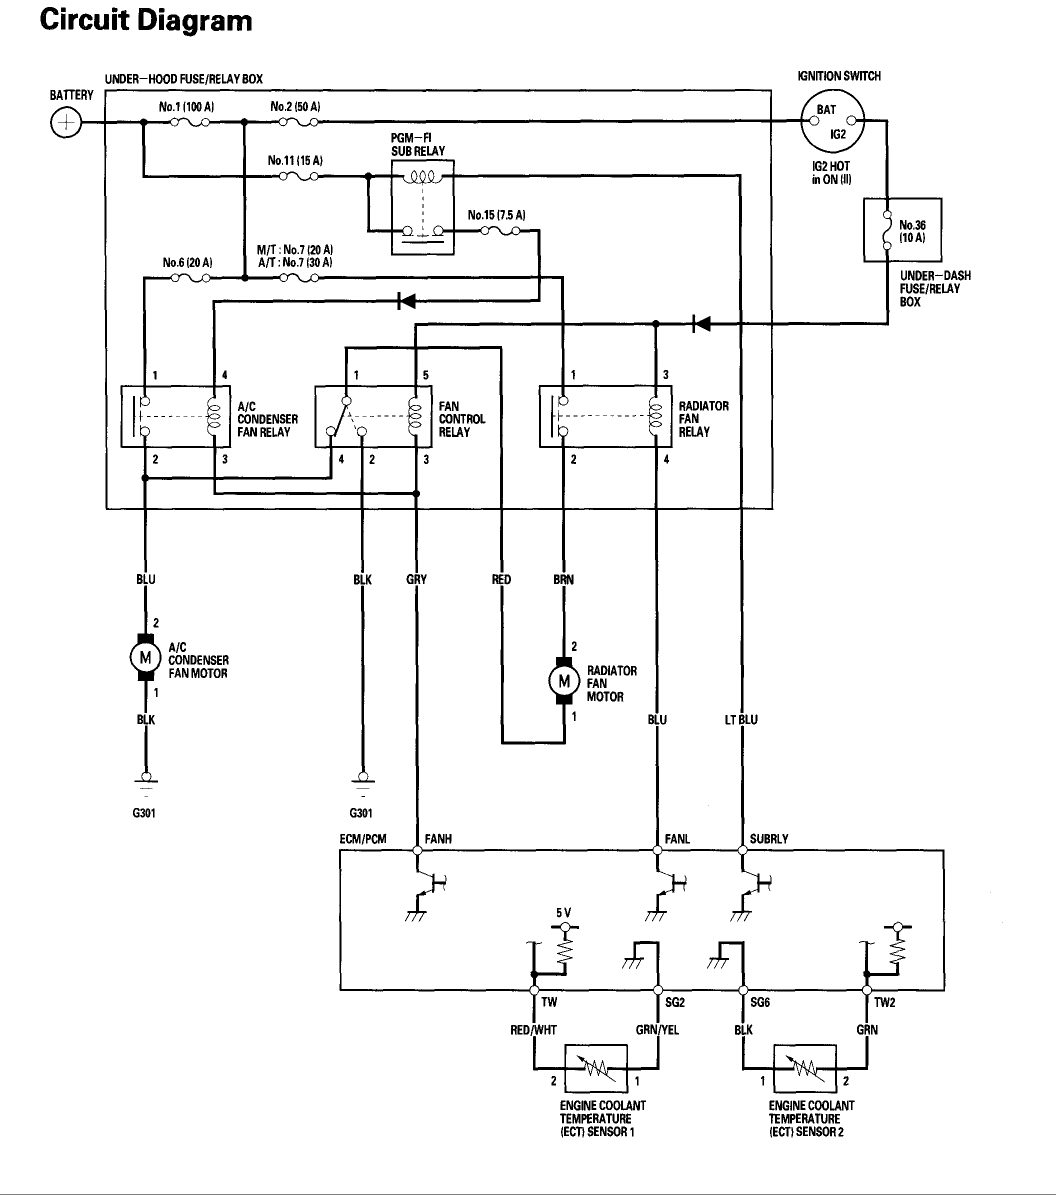 Temp Switch Wiring Diagram Ridgid Table Saw Wiring Diagram For Wiring Diagram Schematics